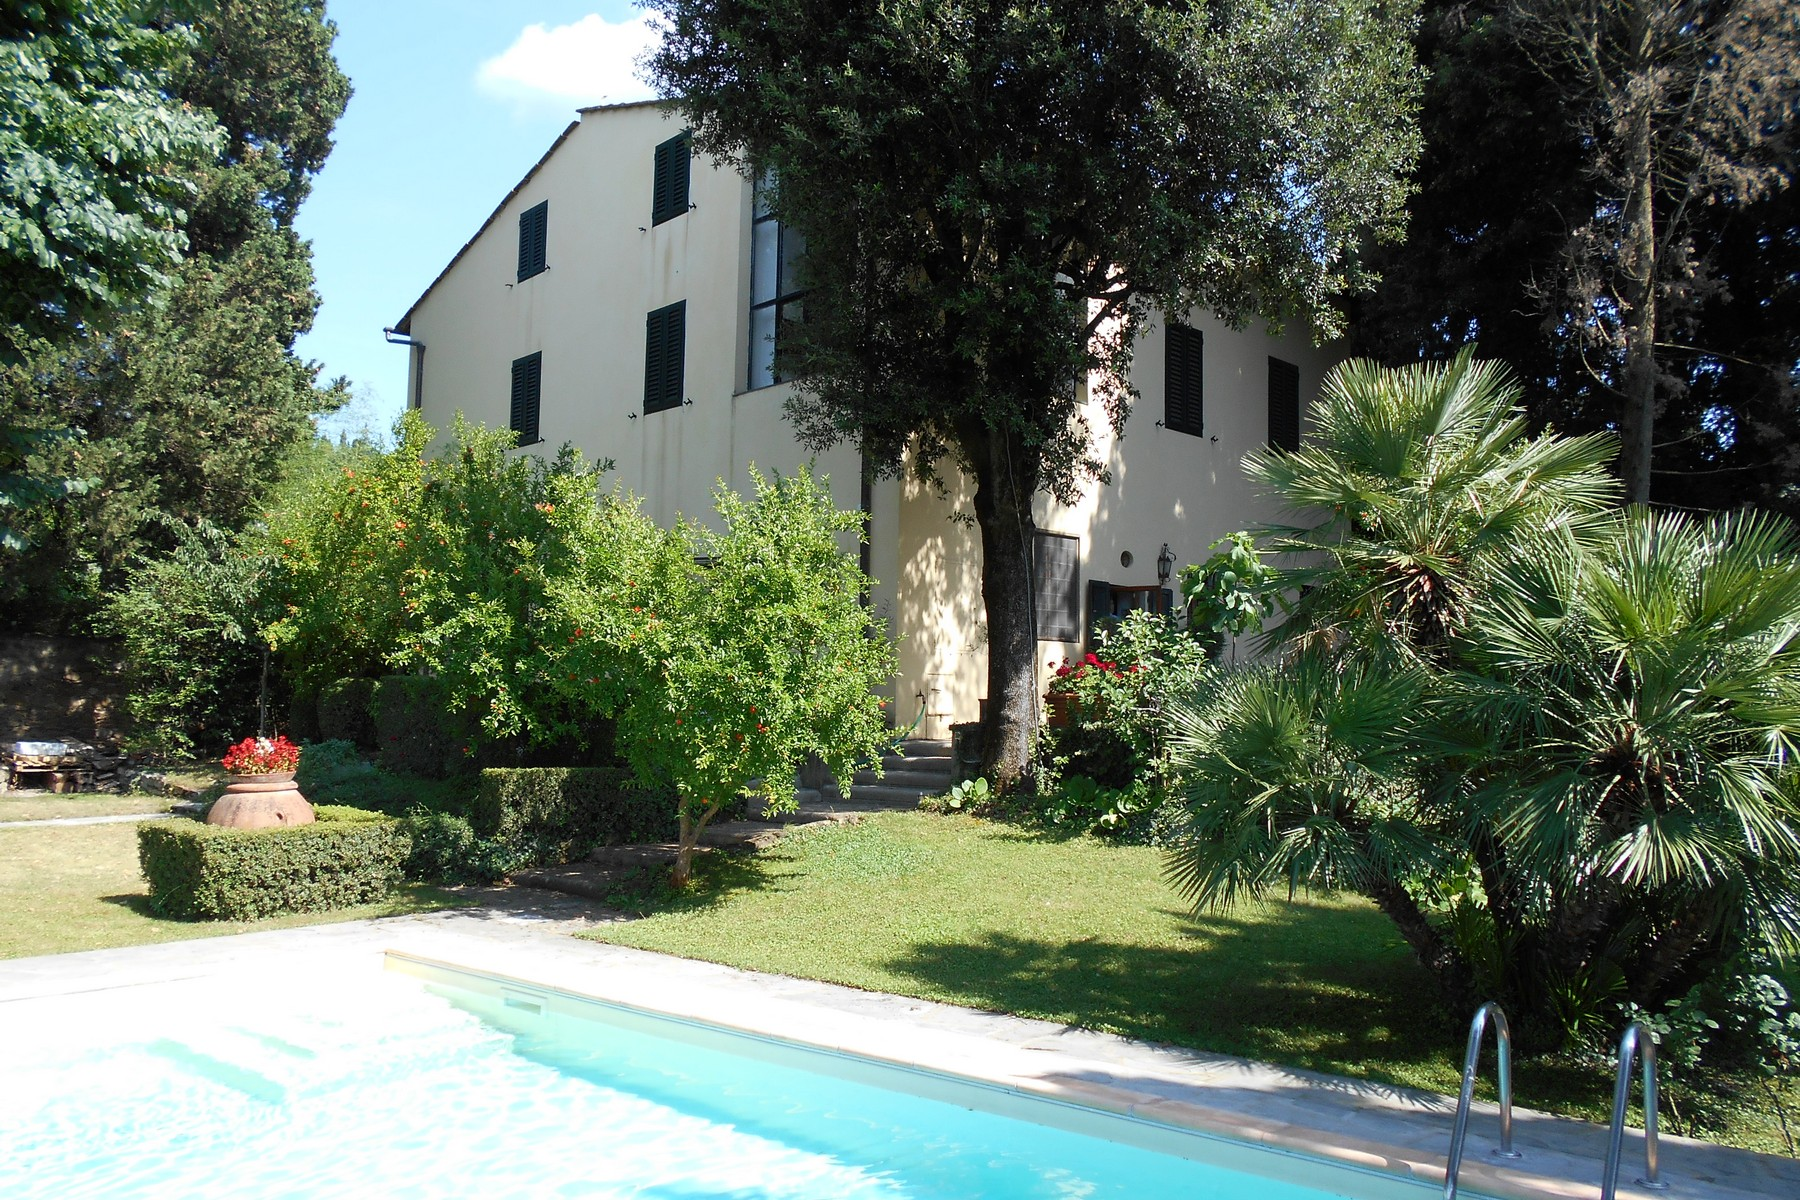 Single Family Home for Sale at Beautiful villa with swimming pool with breathtaking view. Via Lonchio Antella Bagno A Ripoli, 50012 Italy